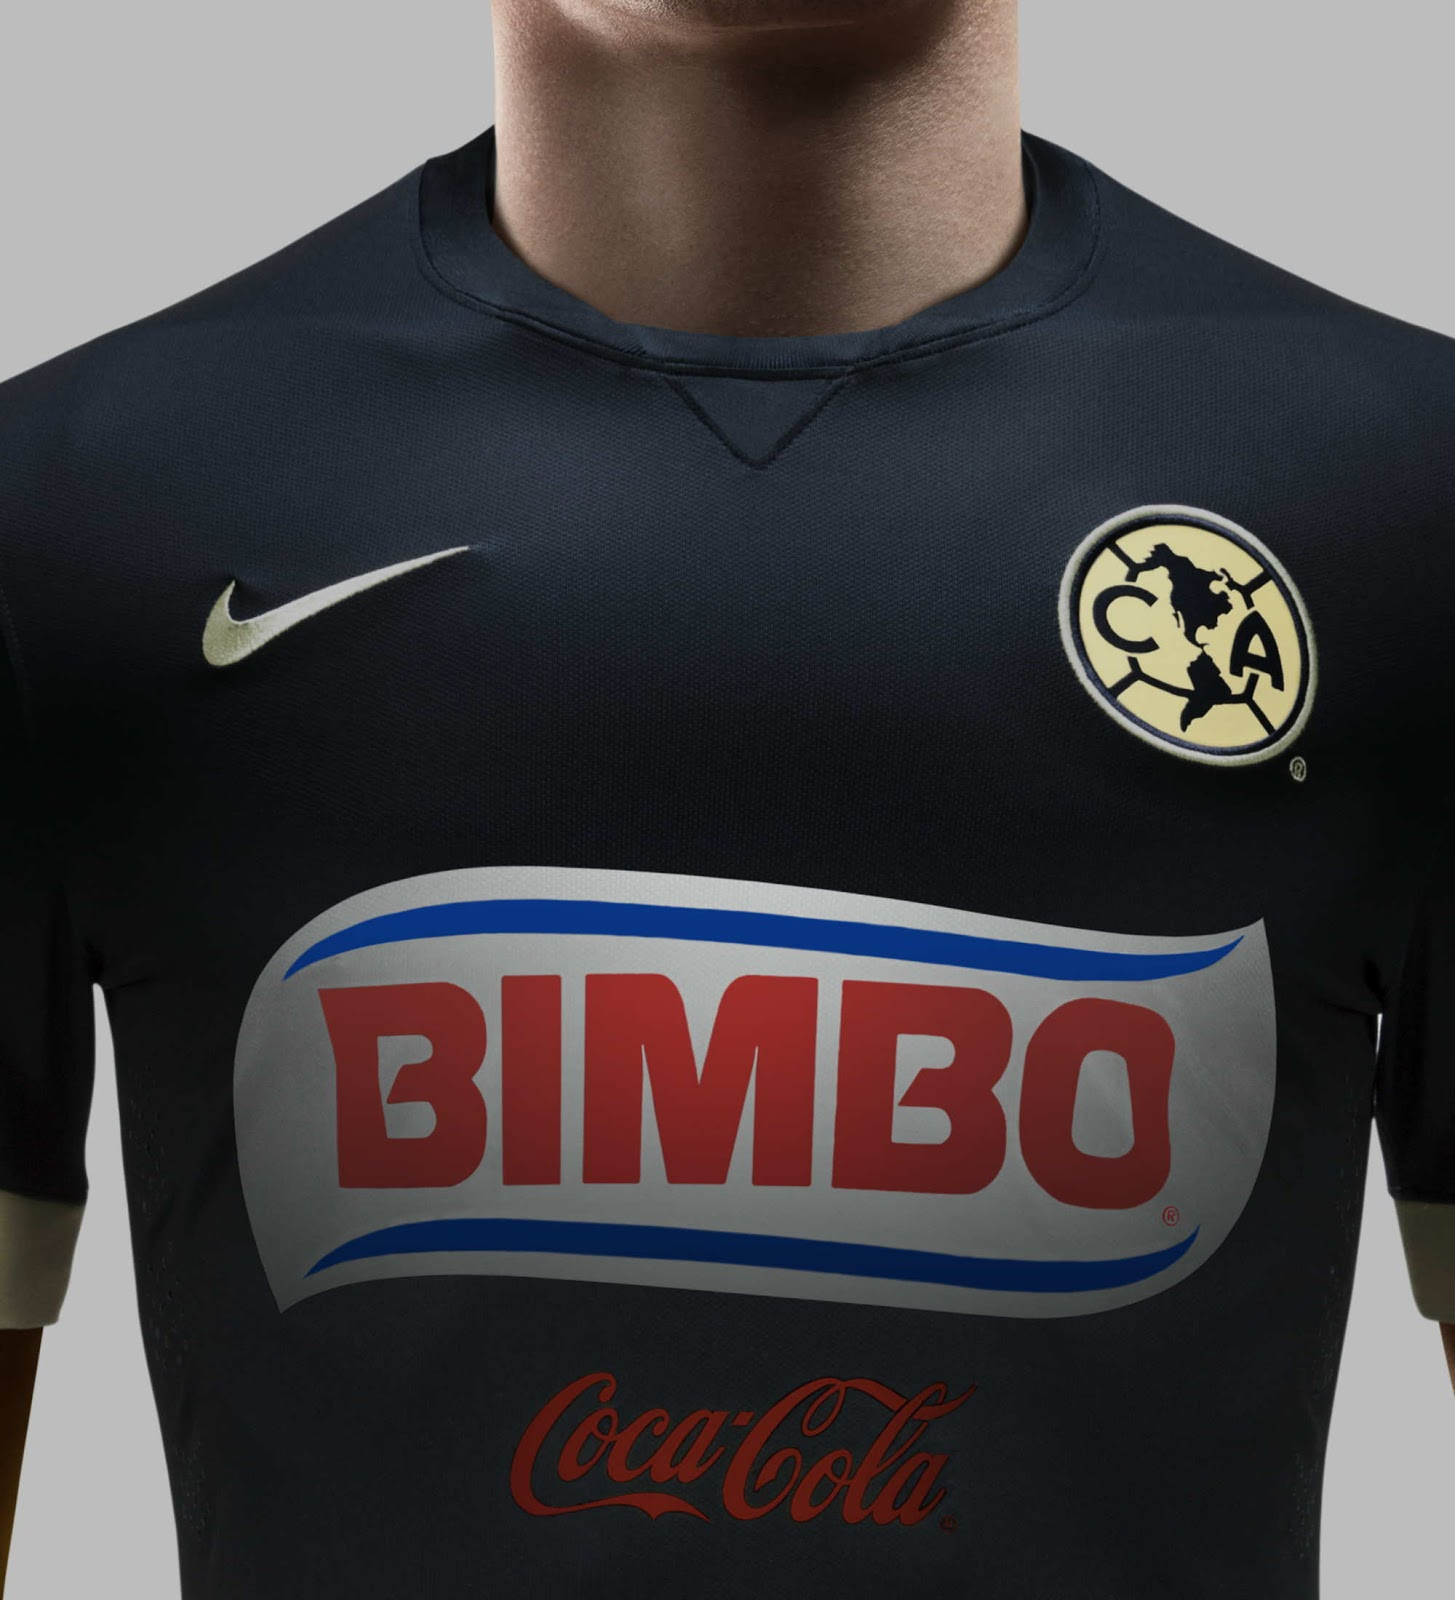 Club america 2014 2015 home and away kits released footy for Cuarto kit del america